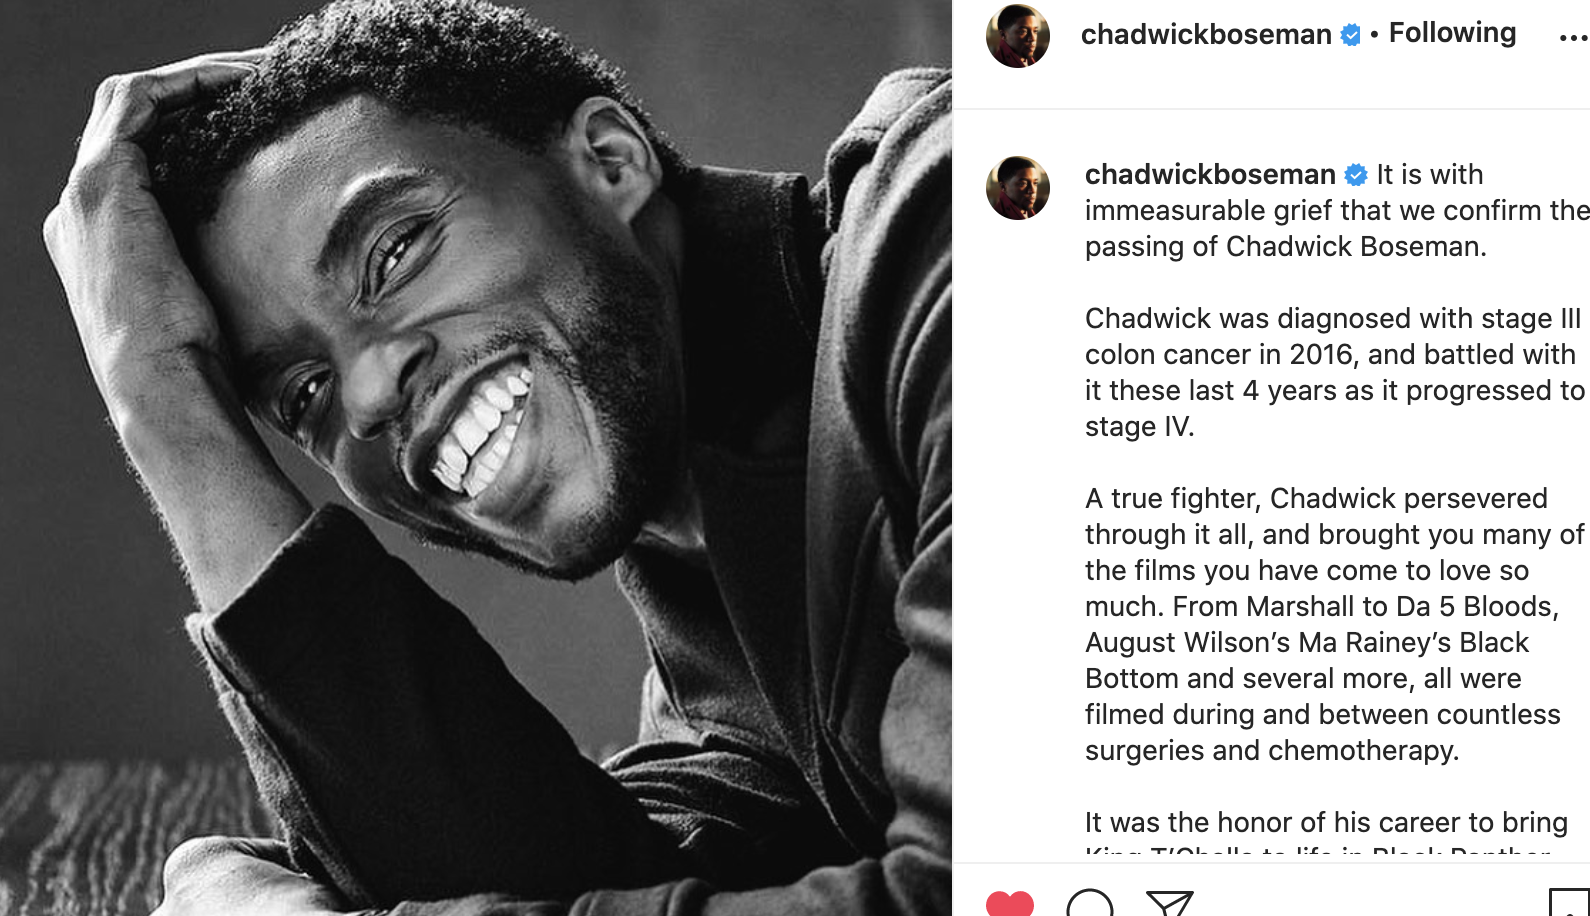 Actor Chadwick Boseman Dies at 42 After 4-Year Fight With Colon Cancer